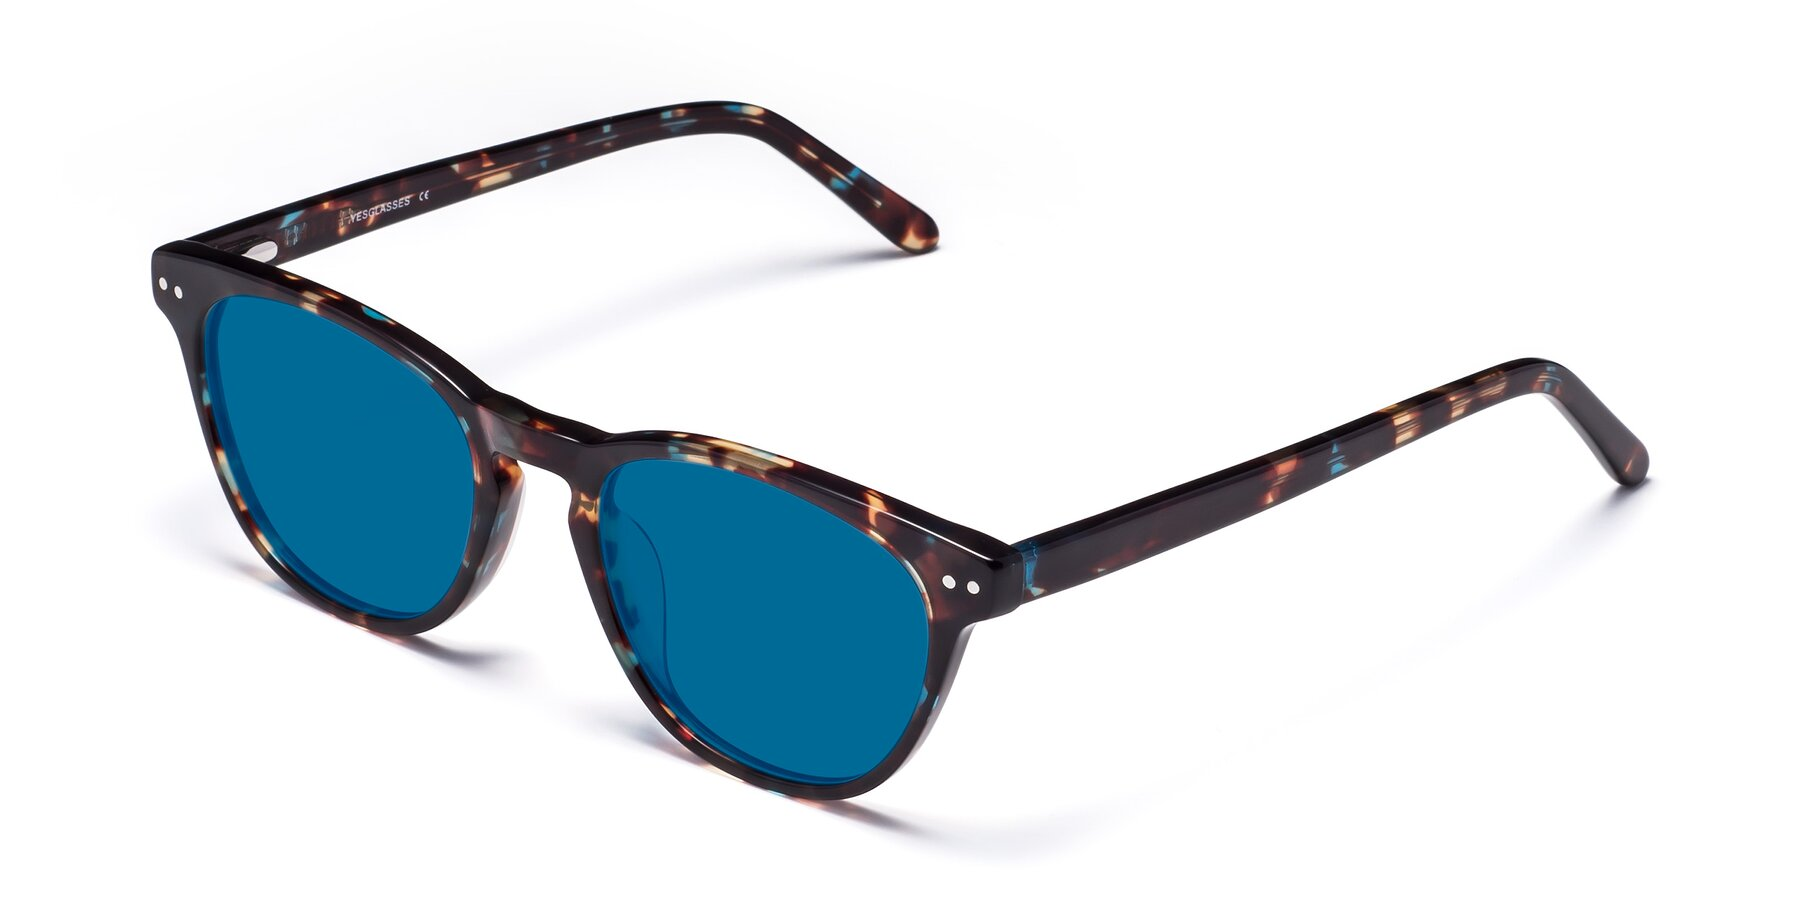 Angle of Blaze in Tortoise-Blue with Blue Tinted Lenses